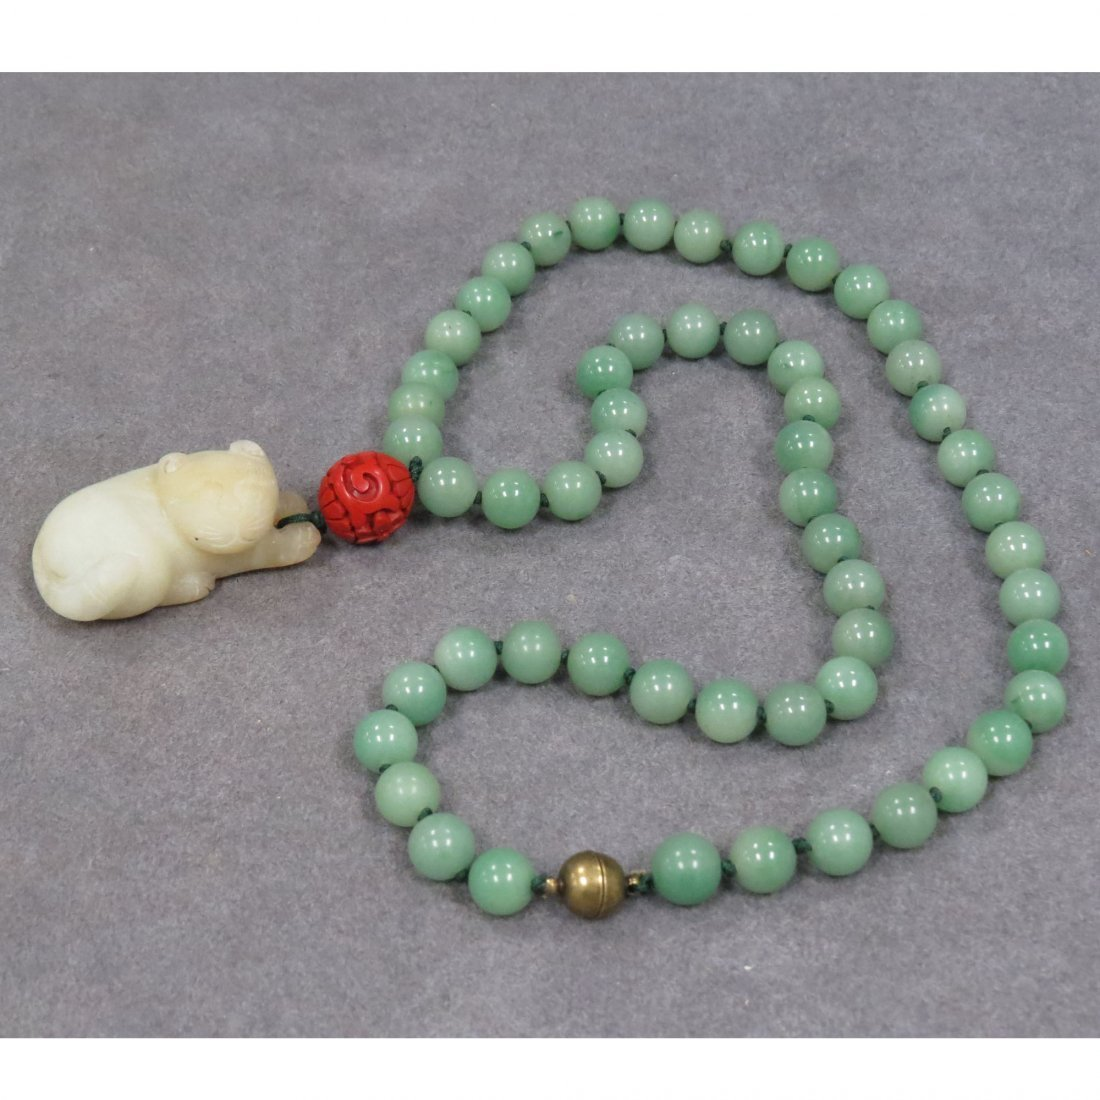 STRAND NECKLACE WITH 9.88-9.95MM CHRYSOPRASE BEADS